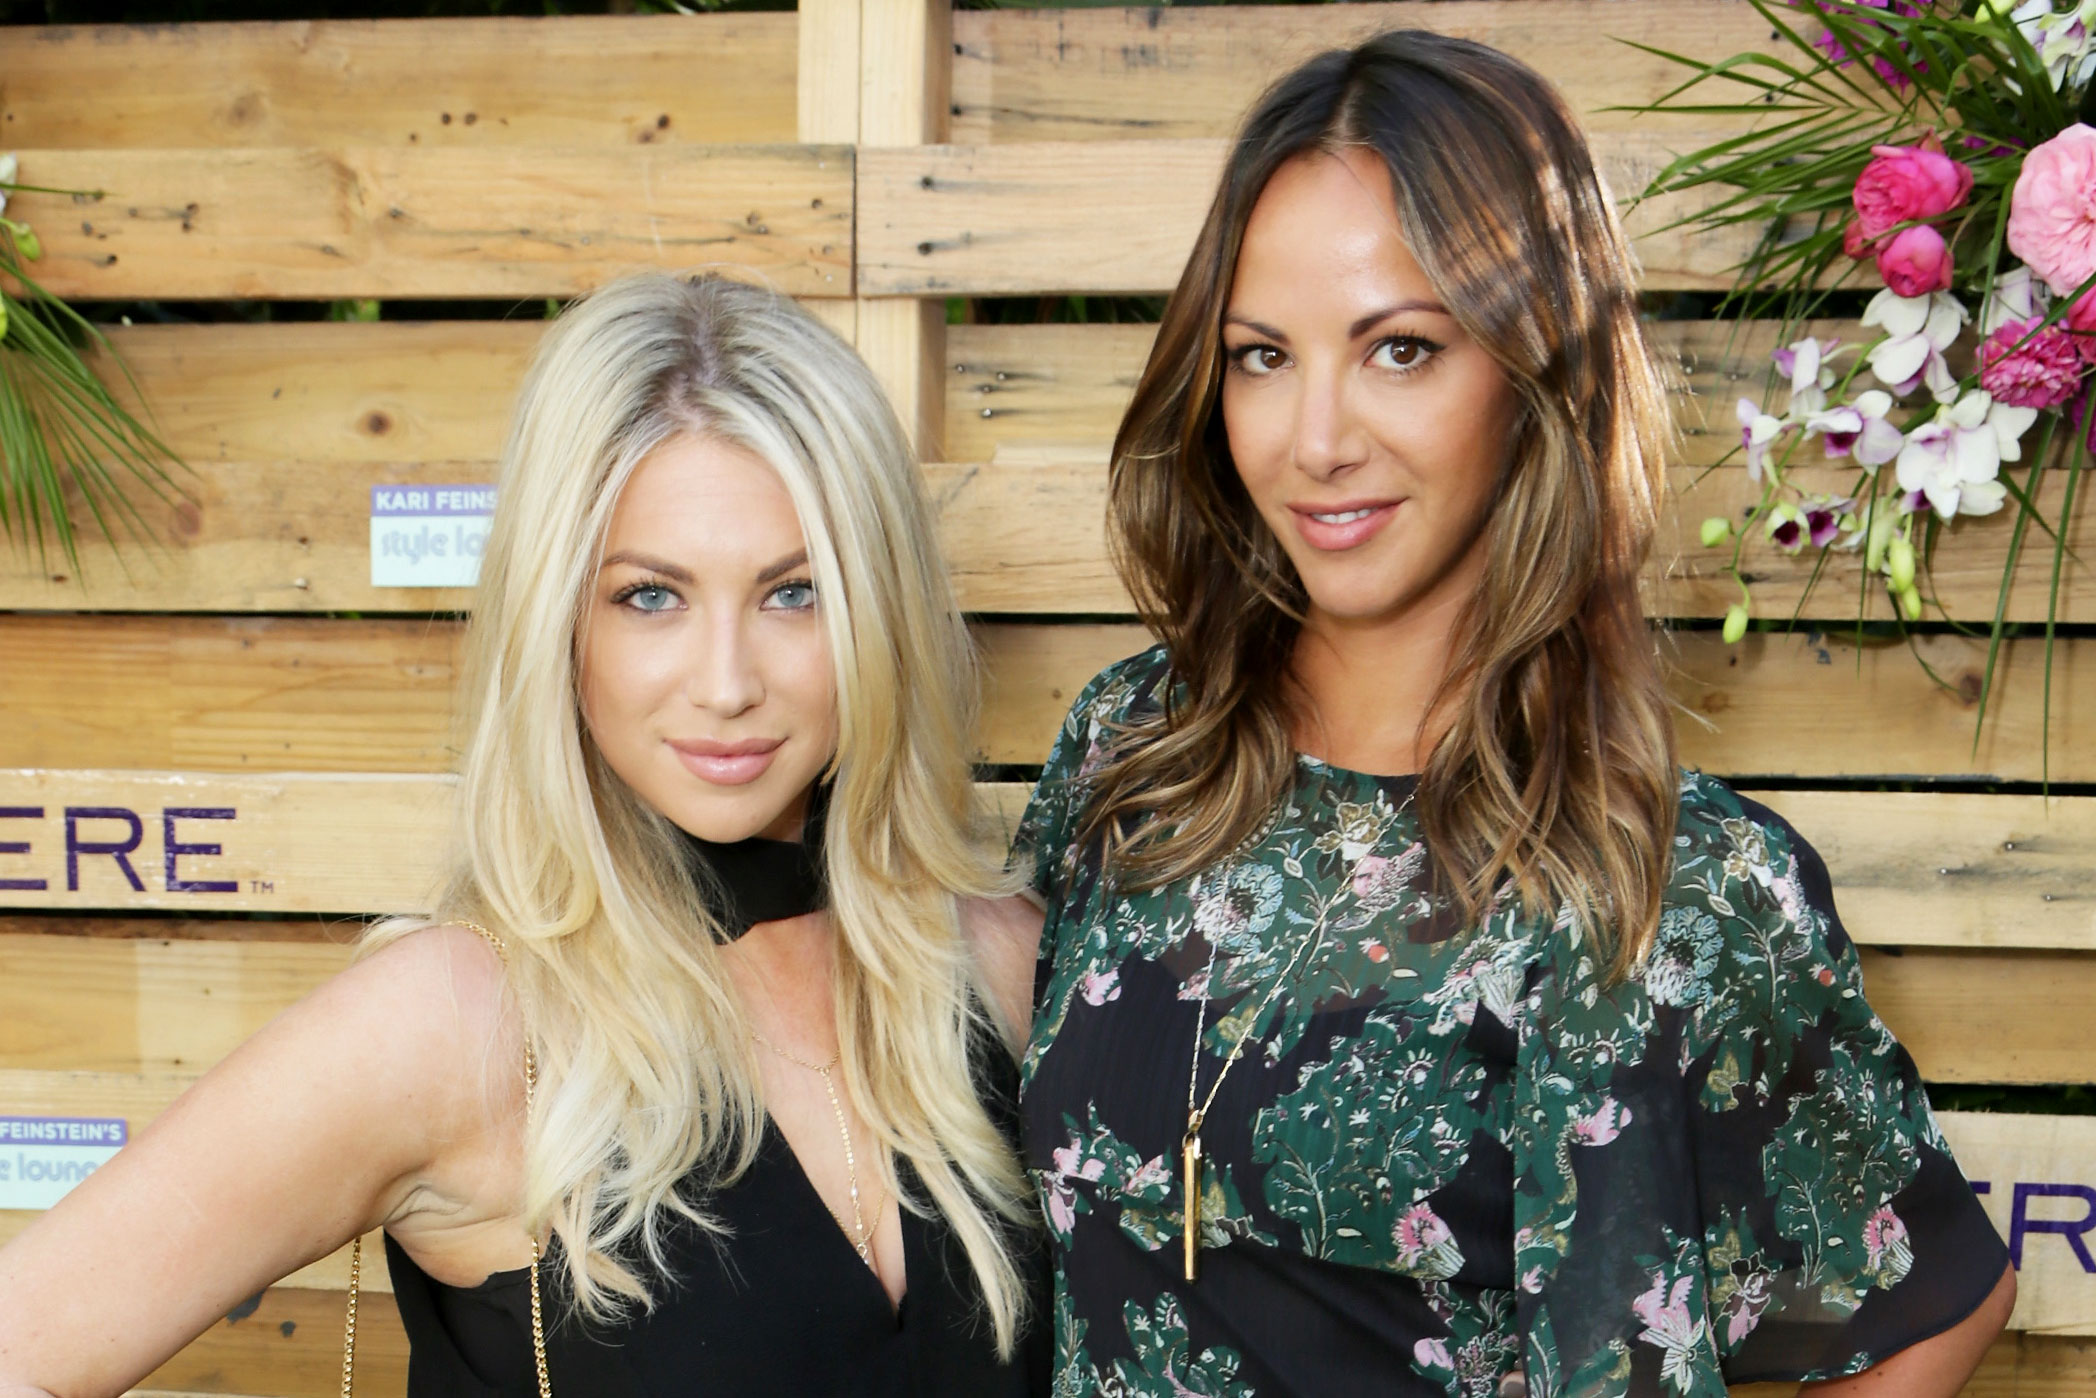 Stassi Schroeder, Kristen Doute, Vanderpump Rules, Lisa Vanderpump, Bravo TV, The Daily Dish